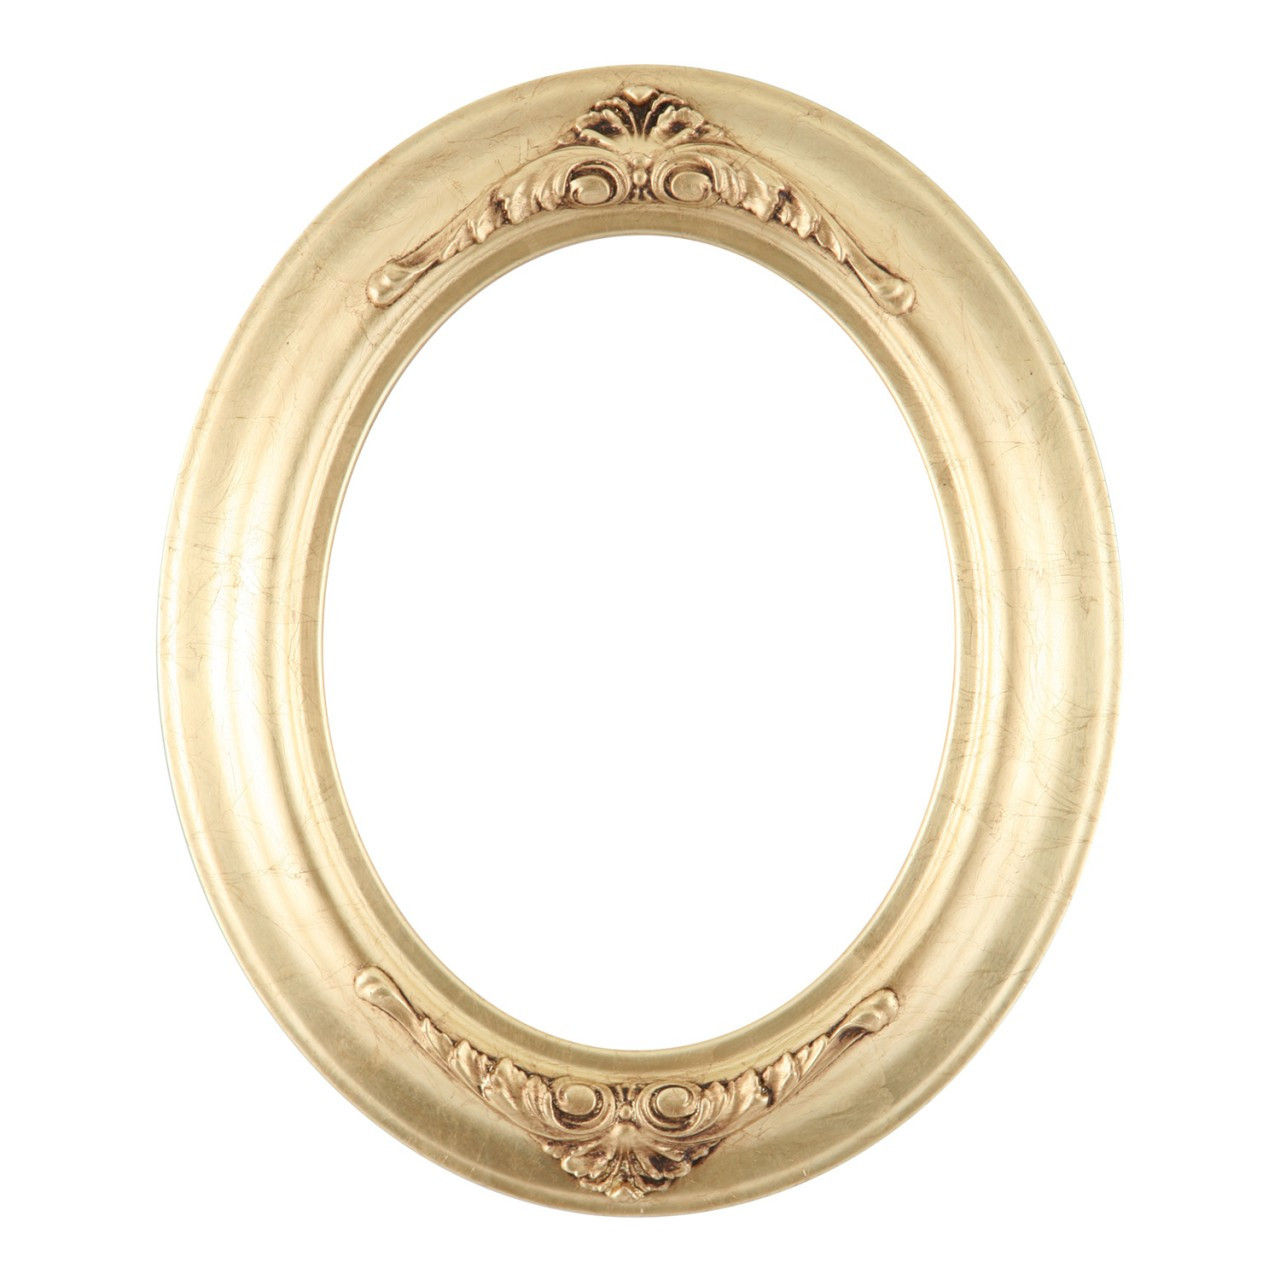 Antique oval frame ornate Old Fashioned Victorian Frame Company Victorian Frame Company Oval Frame In Gold Leaf Finish Antique Gold Picture Frames With